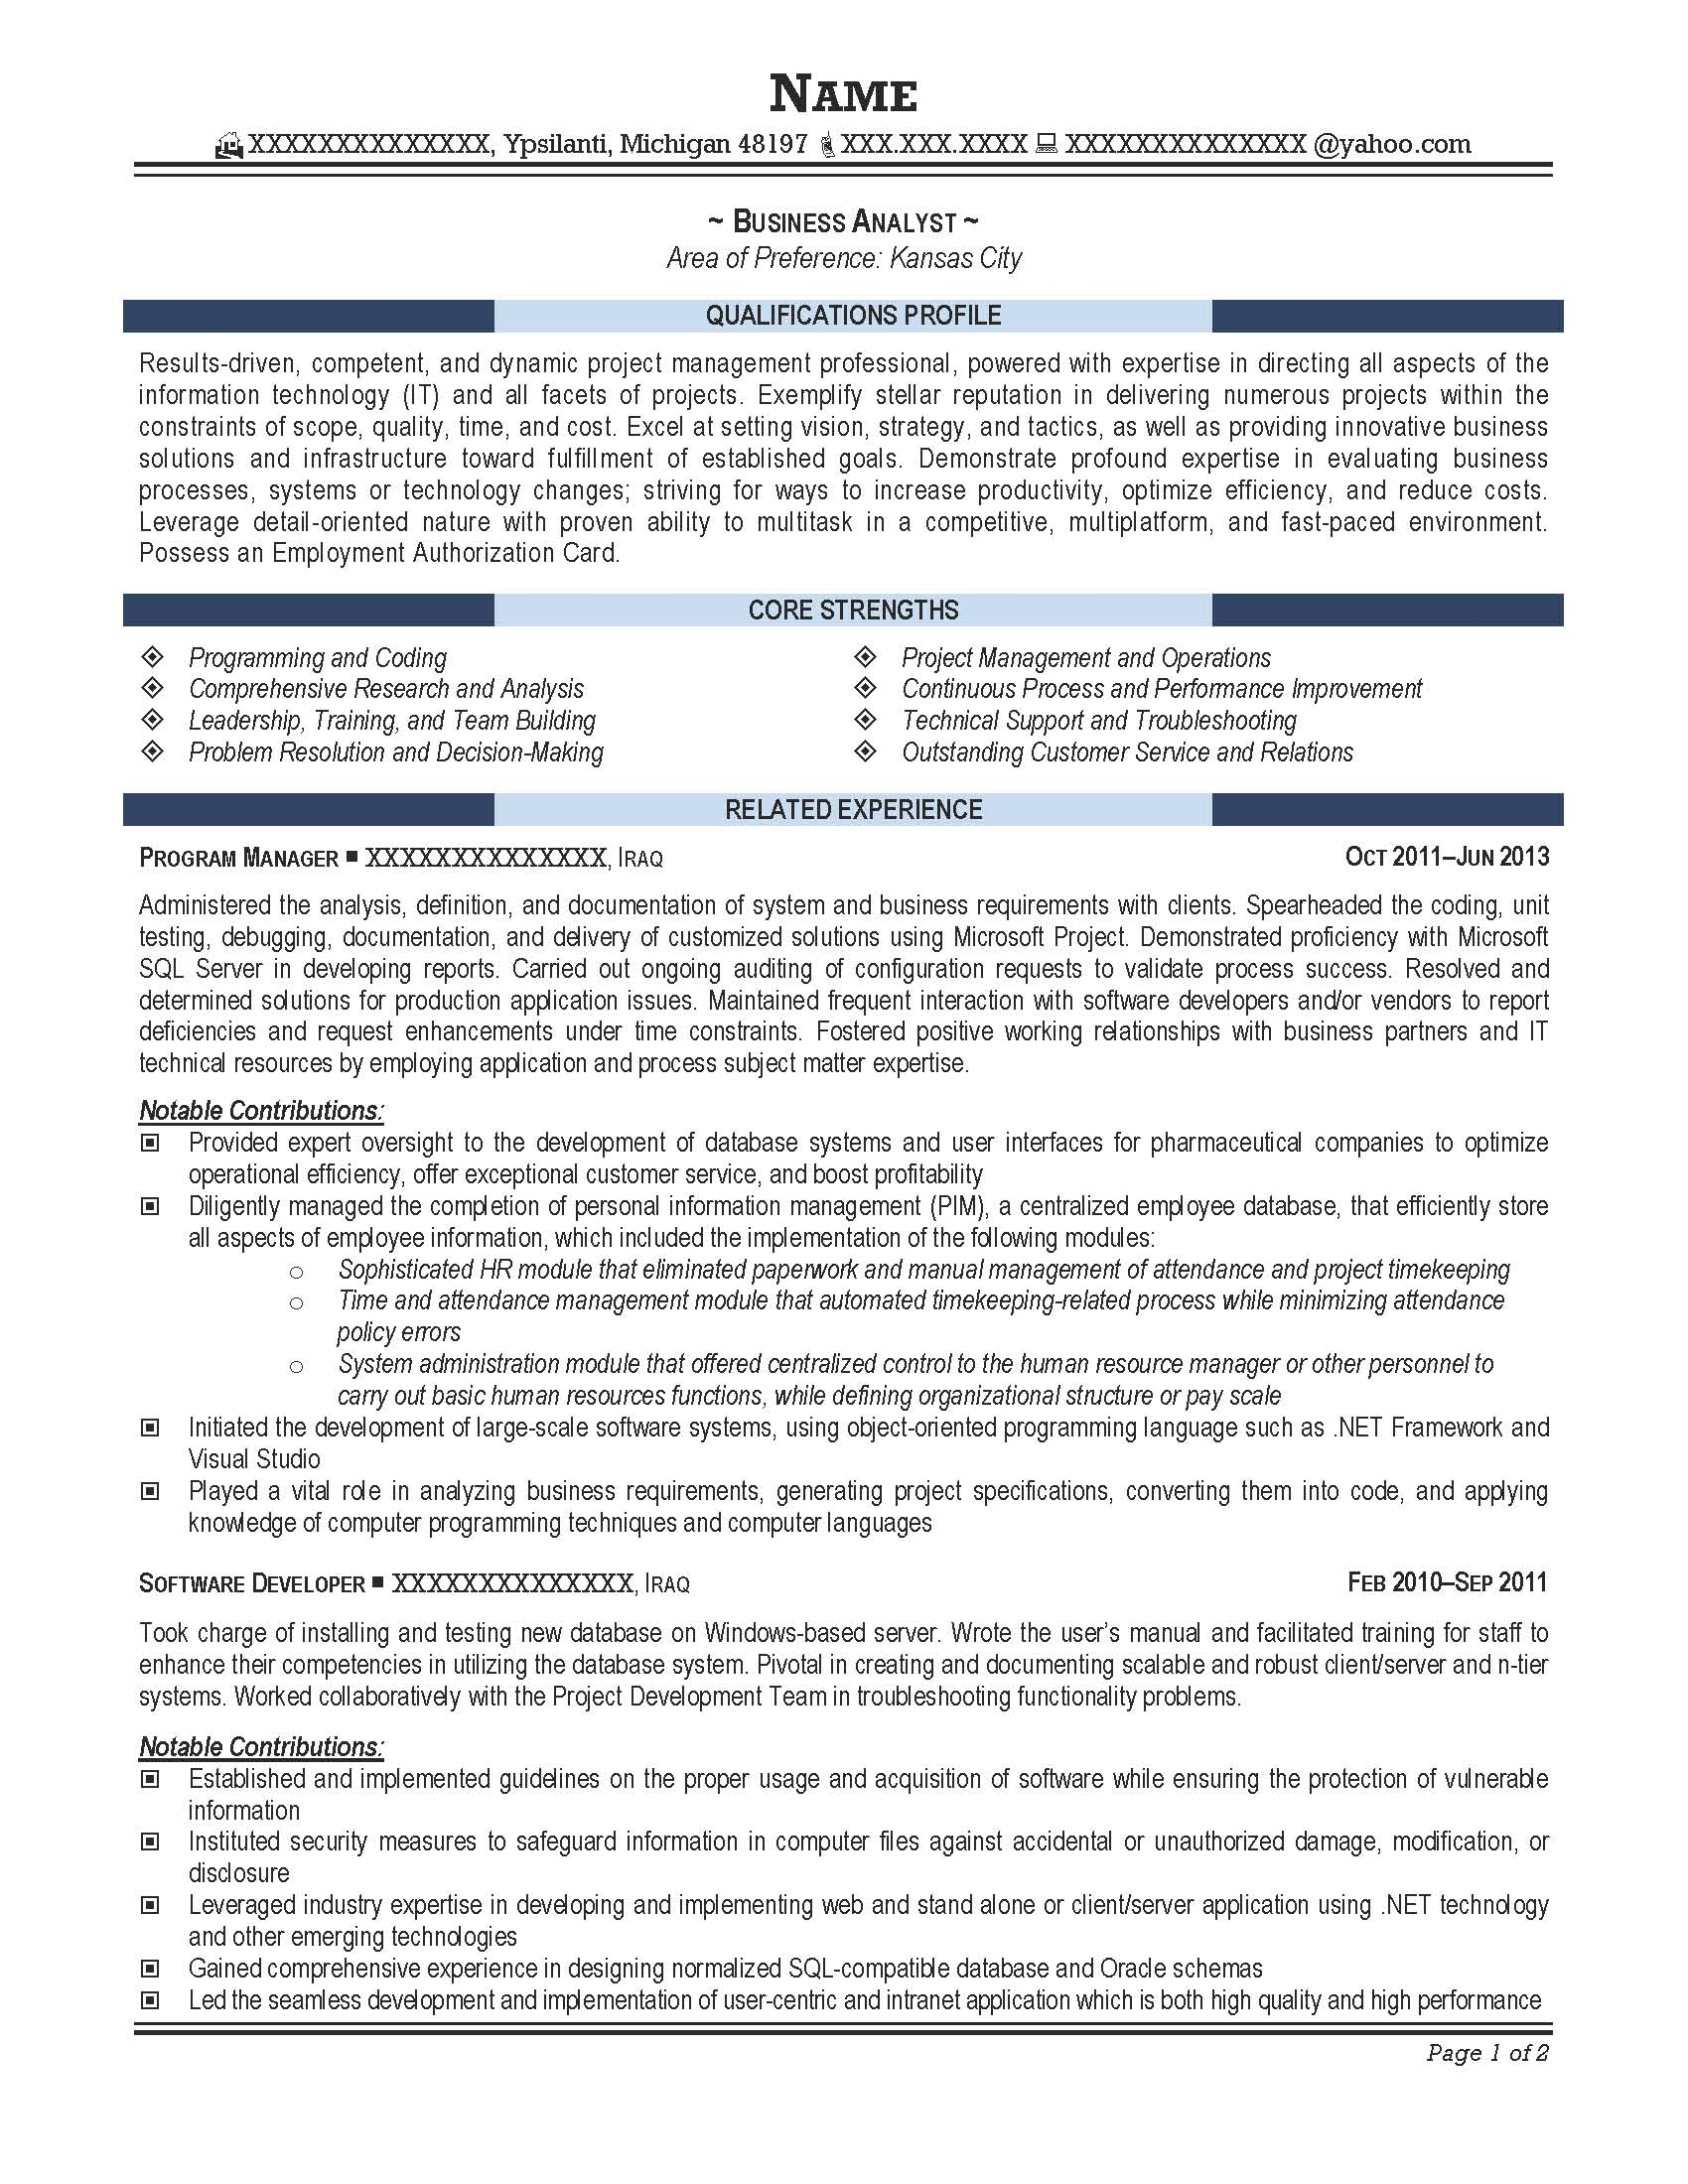 Business Analyst Resume Sample - After-1